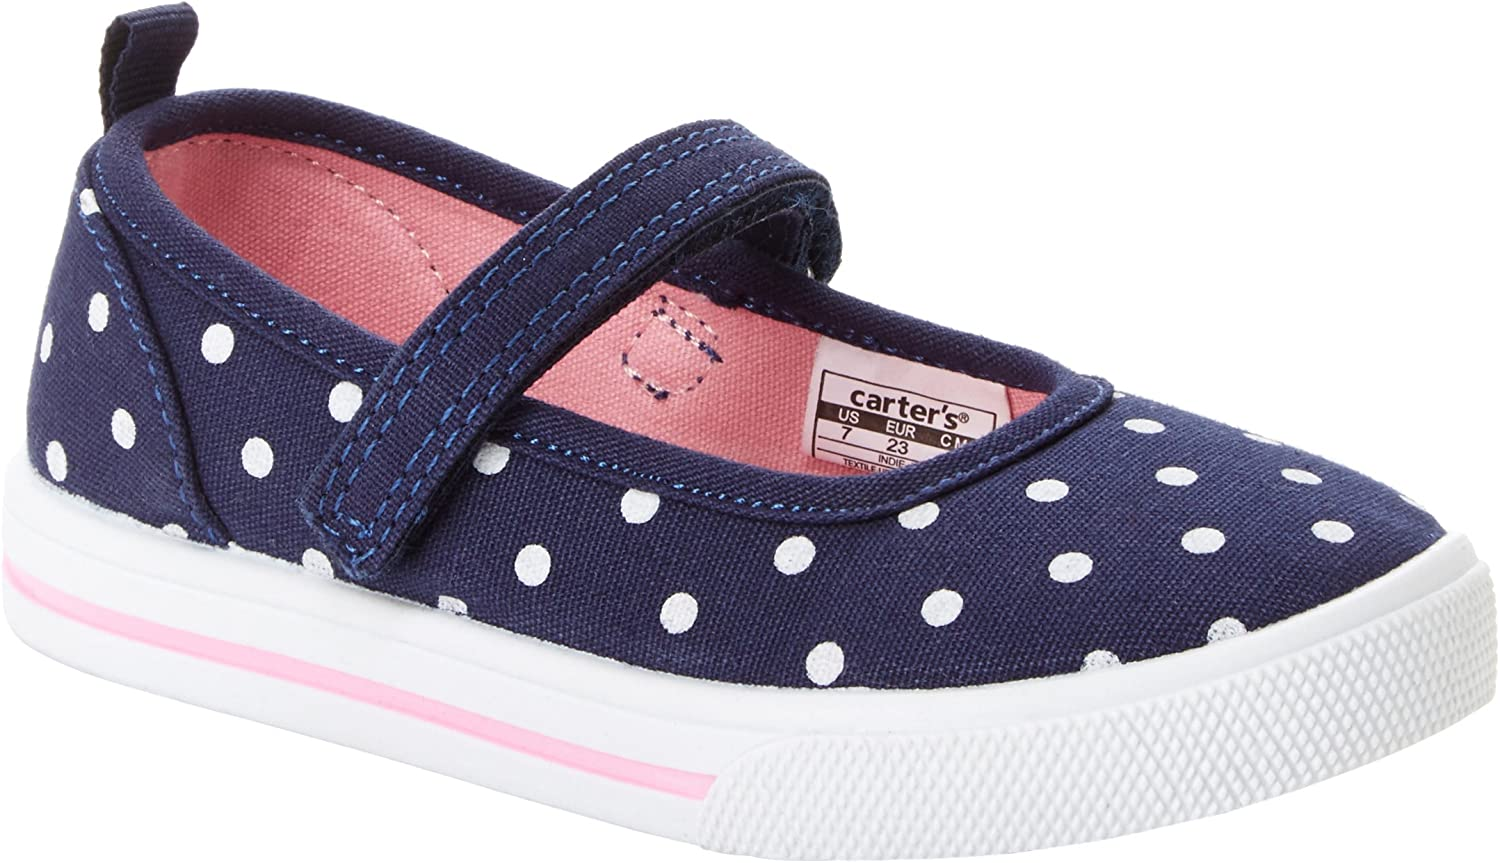 Simple Joys by Carter's Toddler and Little Girls' (1-8 yrs) Casual Mary Jane Shoe